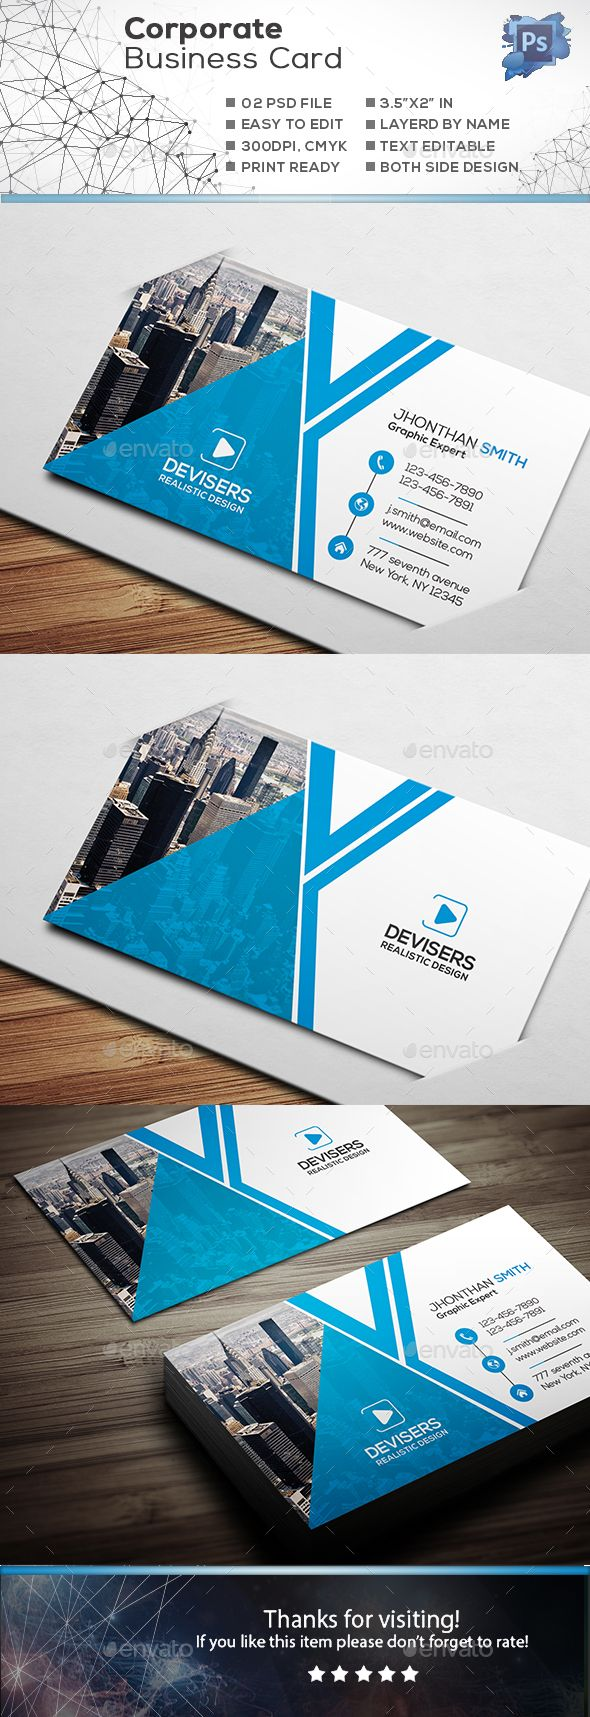 #Corporate #Business Card - Corporate Business #Cards Download here:  https://graphicriver.net/item/corporate-business-card/19178591?ref=alena994